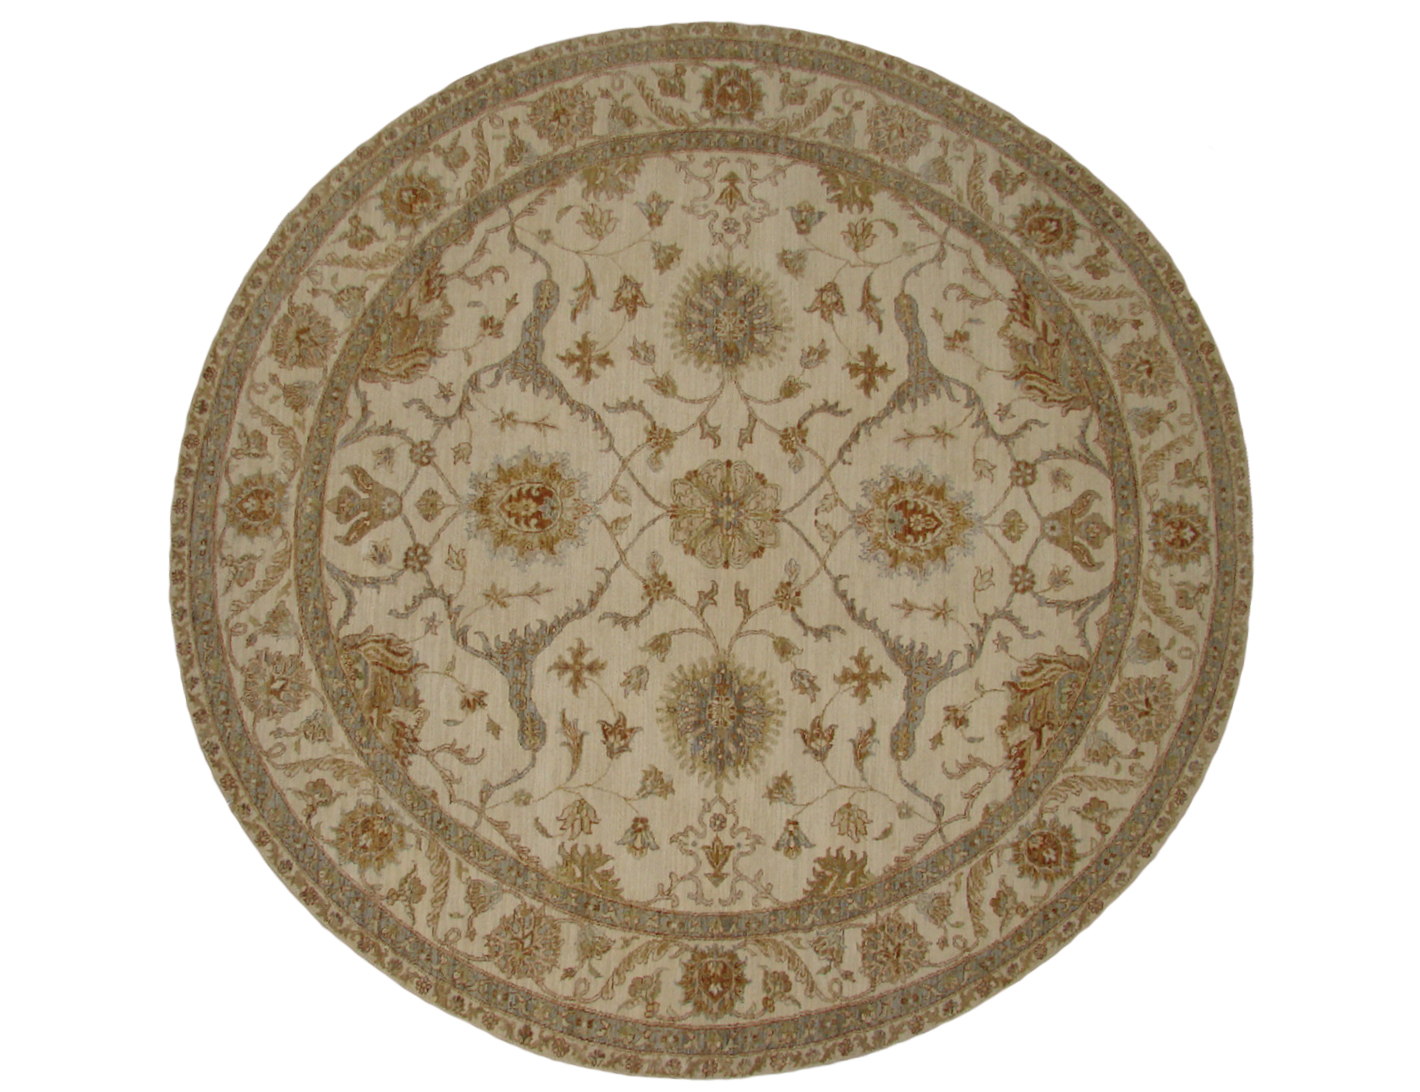 8 Round & Square Traditional Hand Knotted Wool Area Rug - MR20425